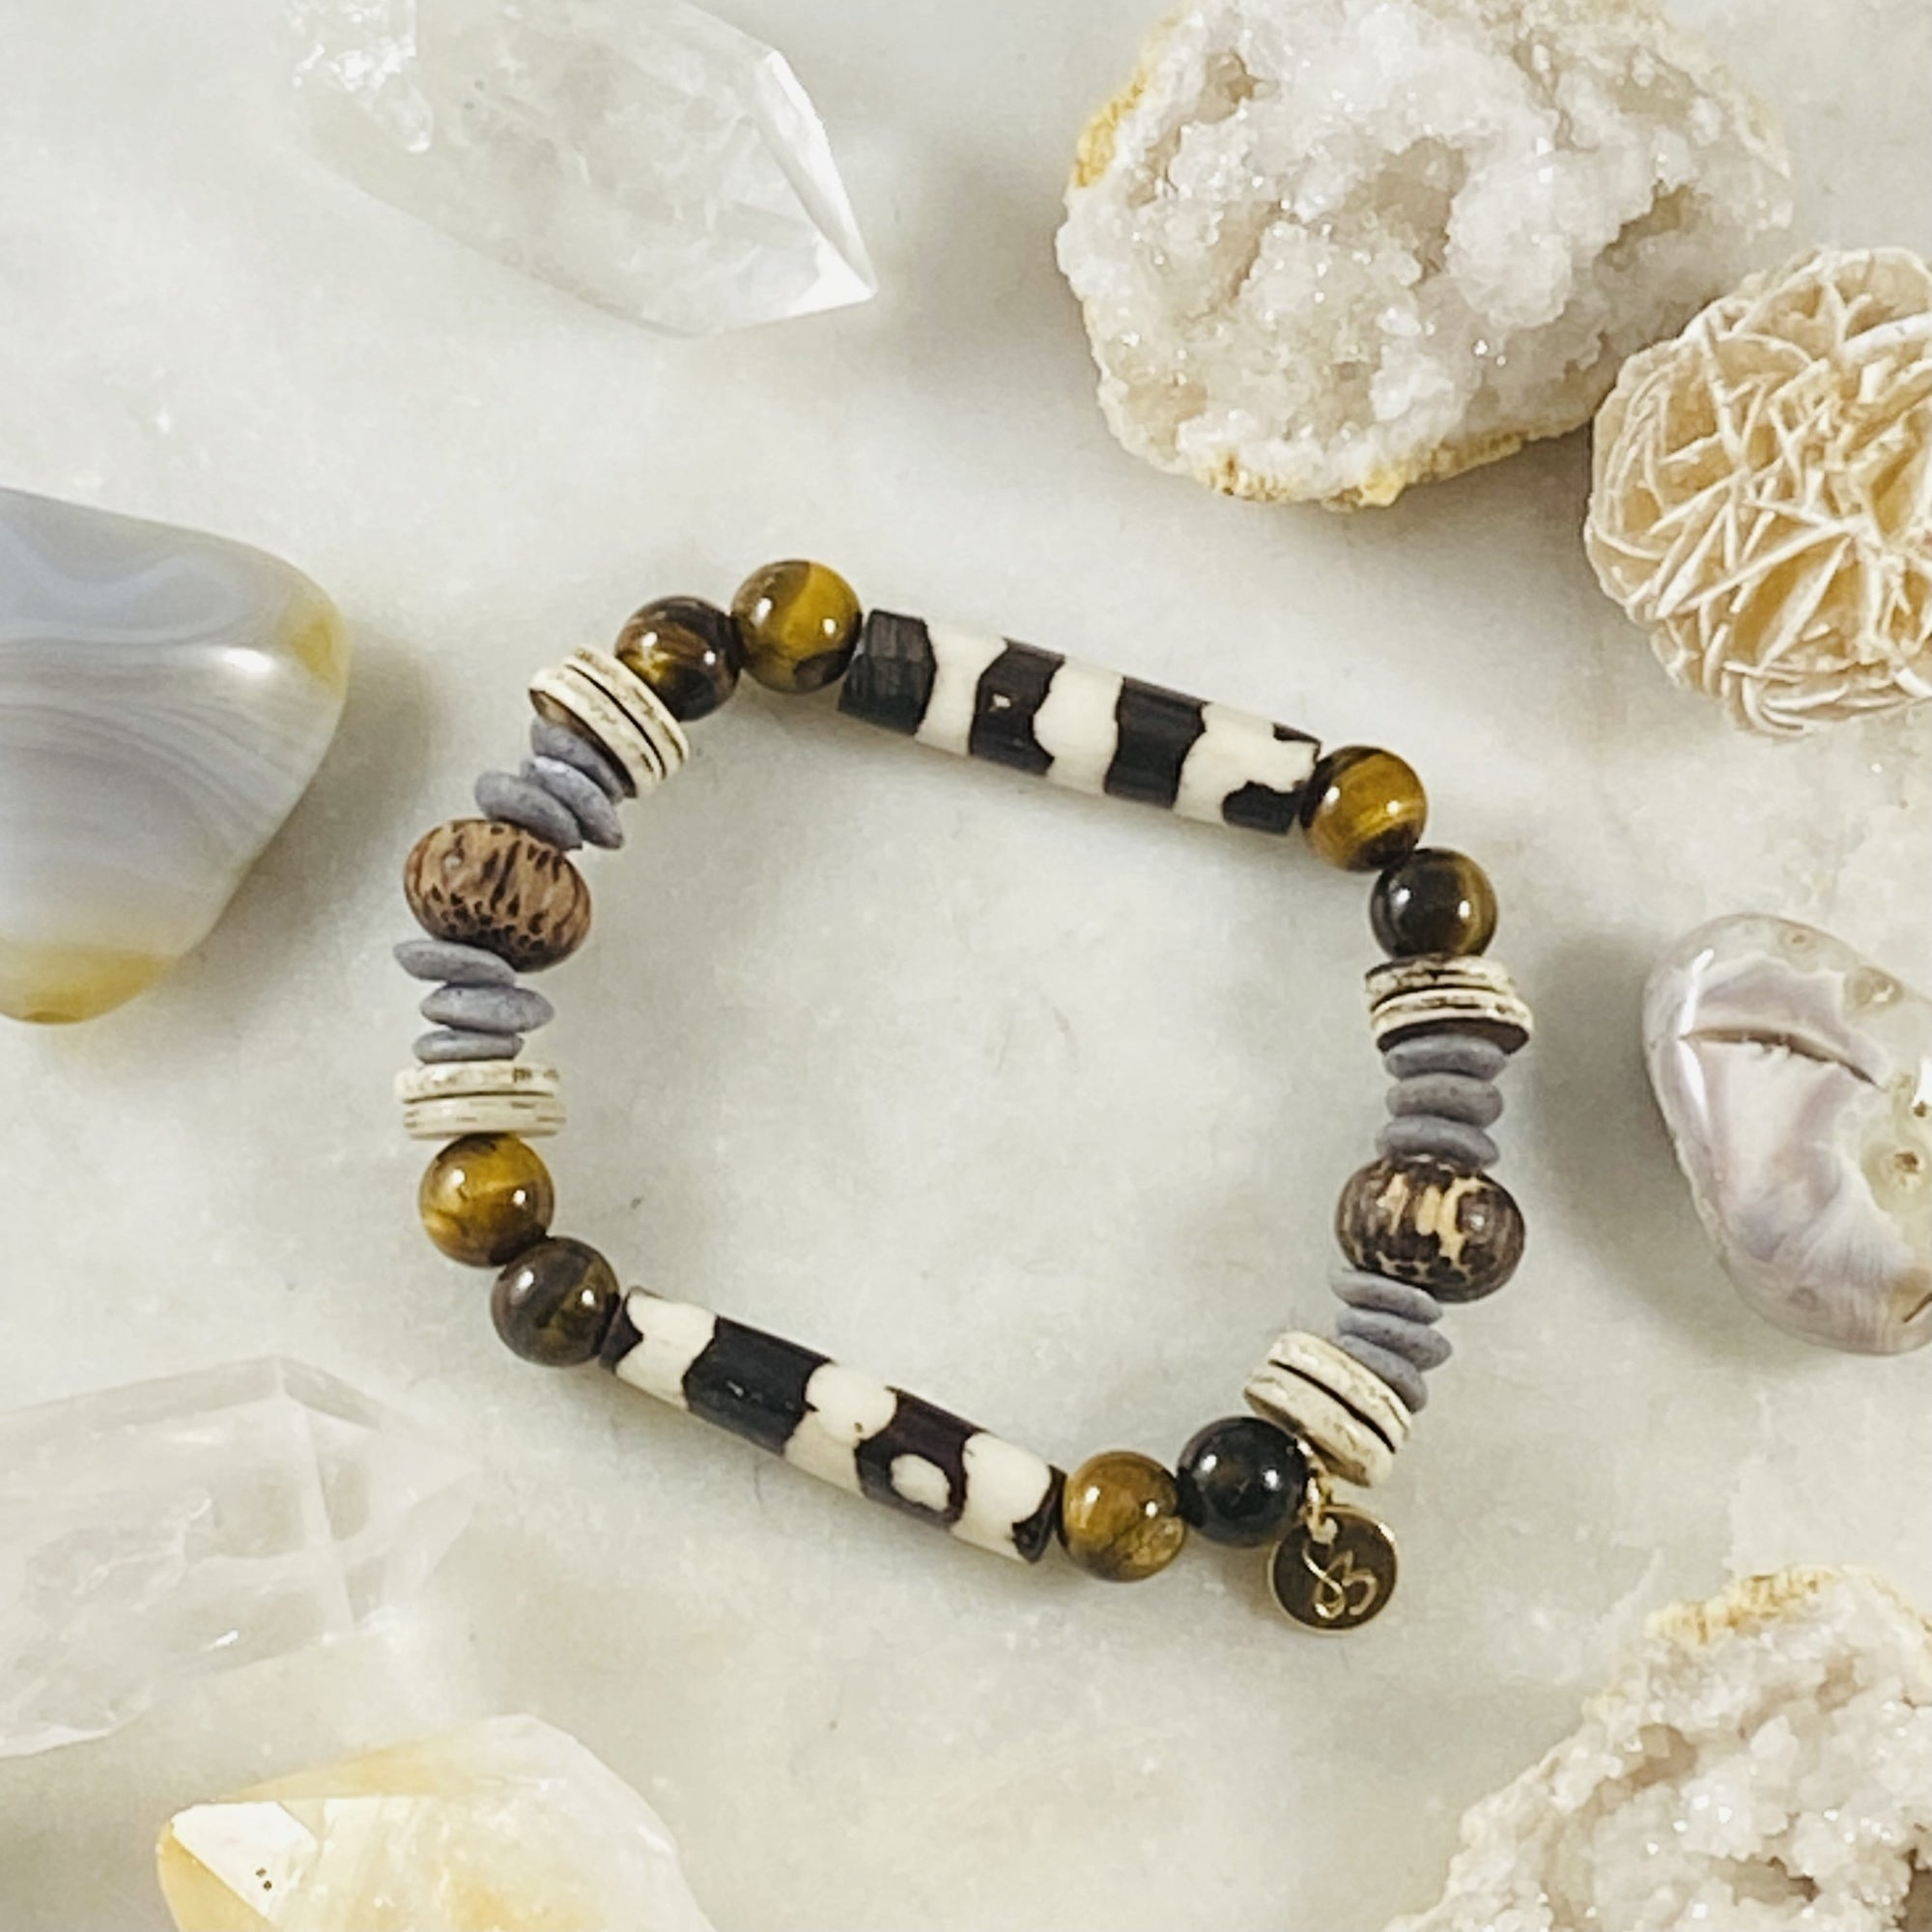 Handmade Pono Pono stacking bracelet by Sarah Belle